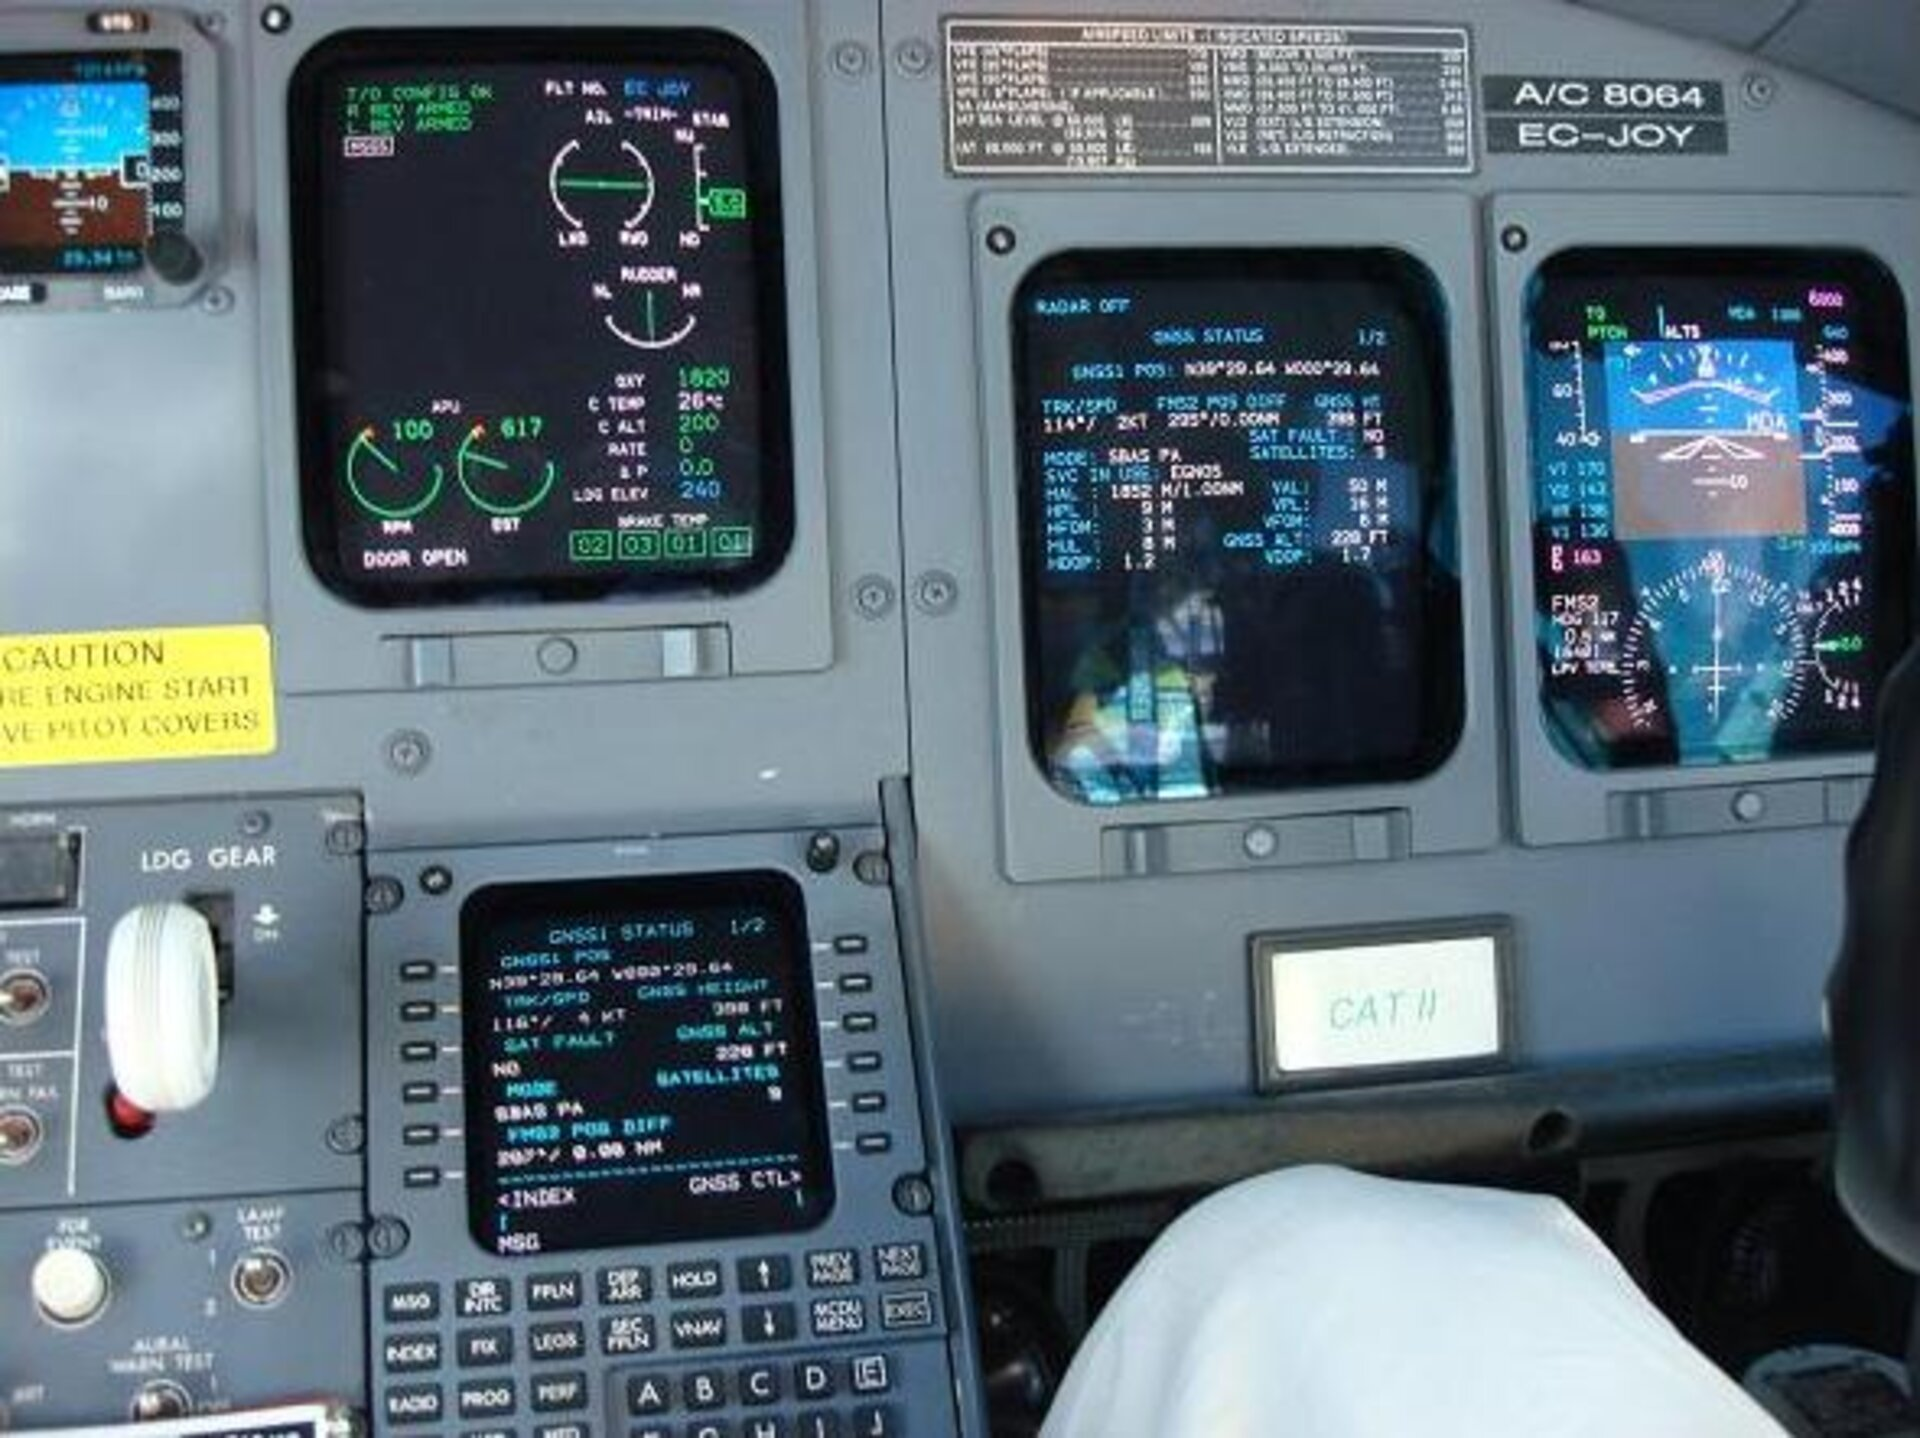 EGNOS-equipped aircraft cockpit